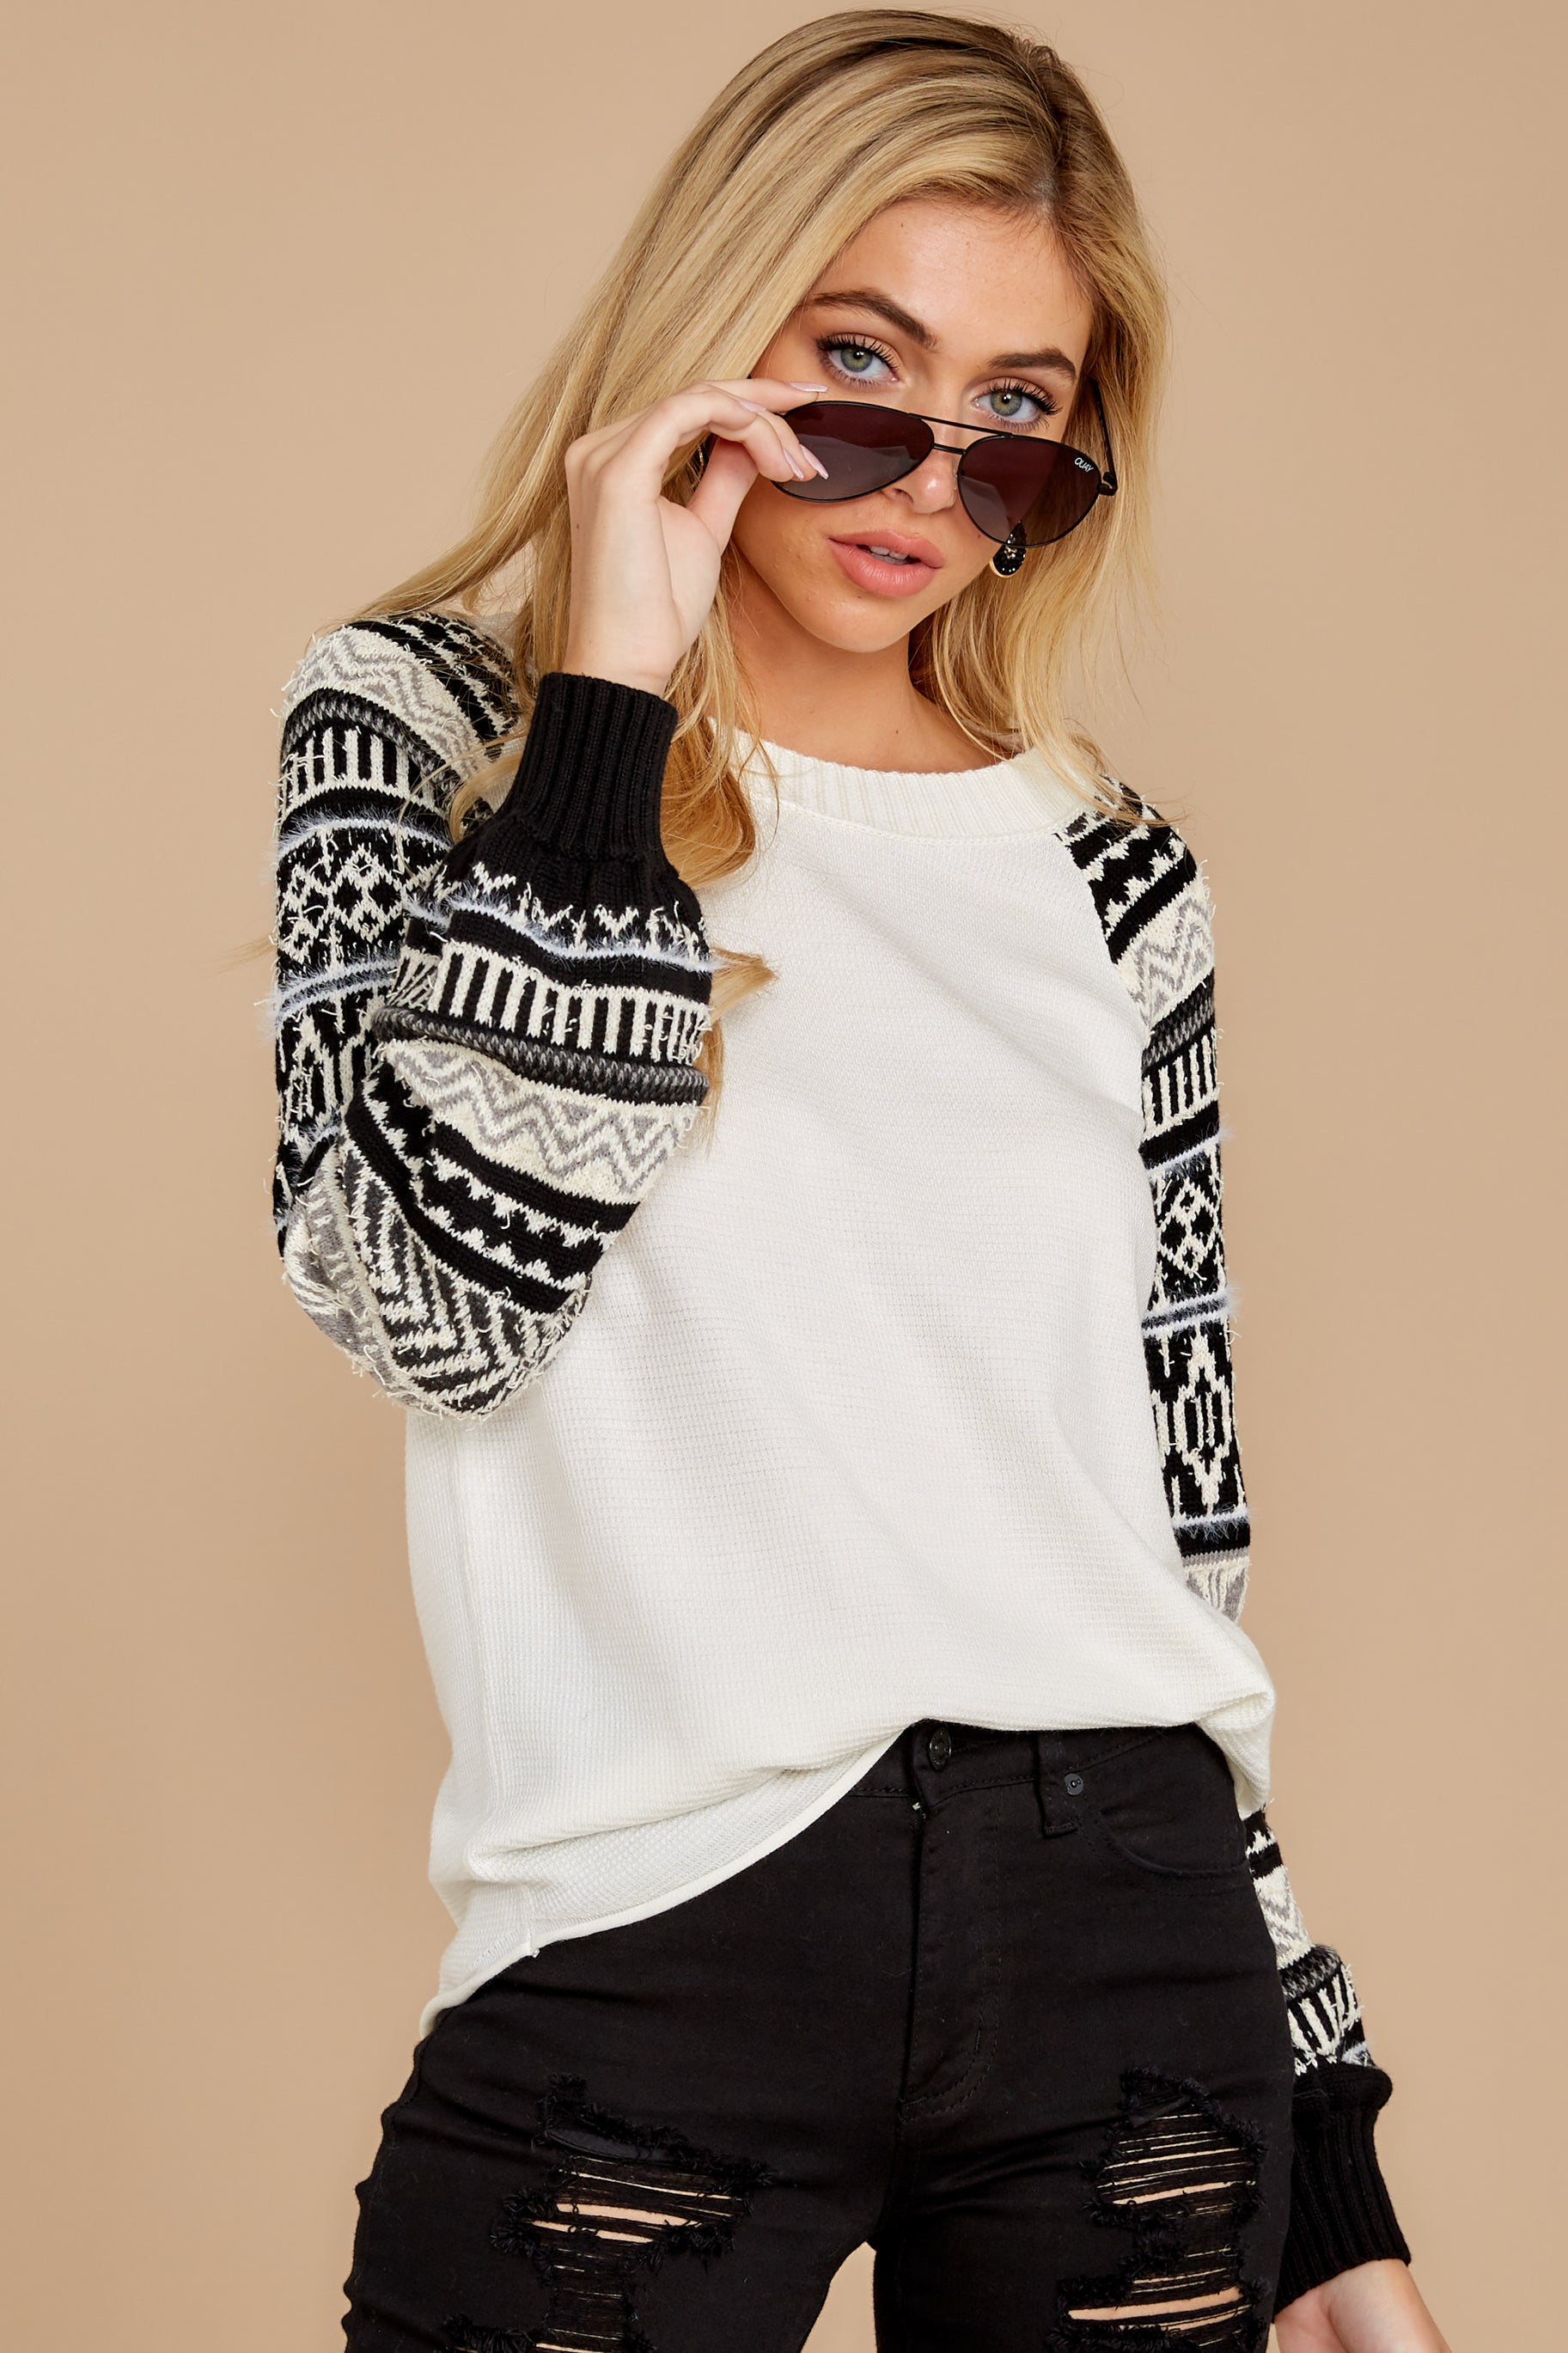 5 Never Settle Black And White Sweater at reddress.com